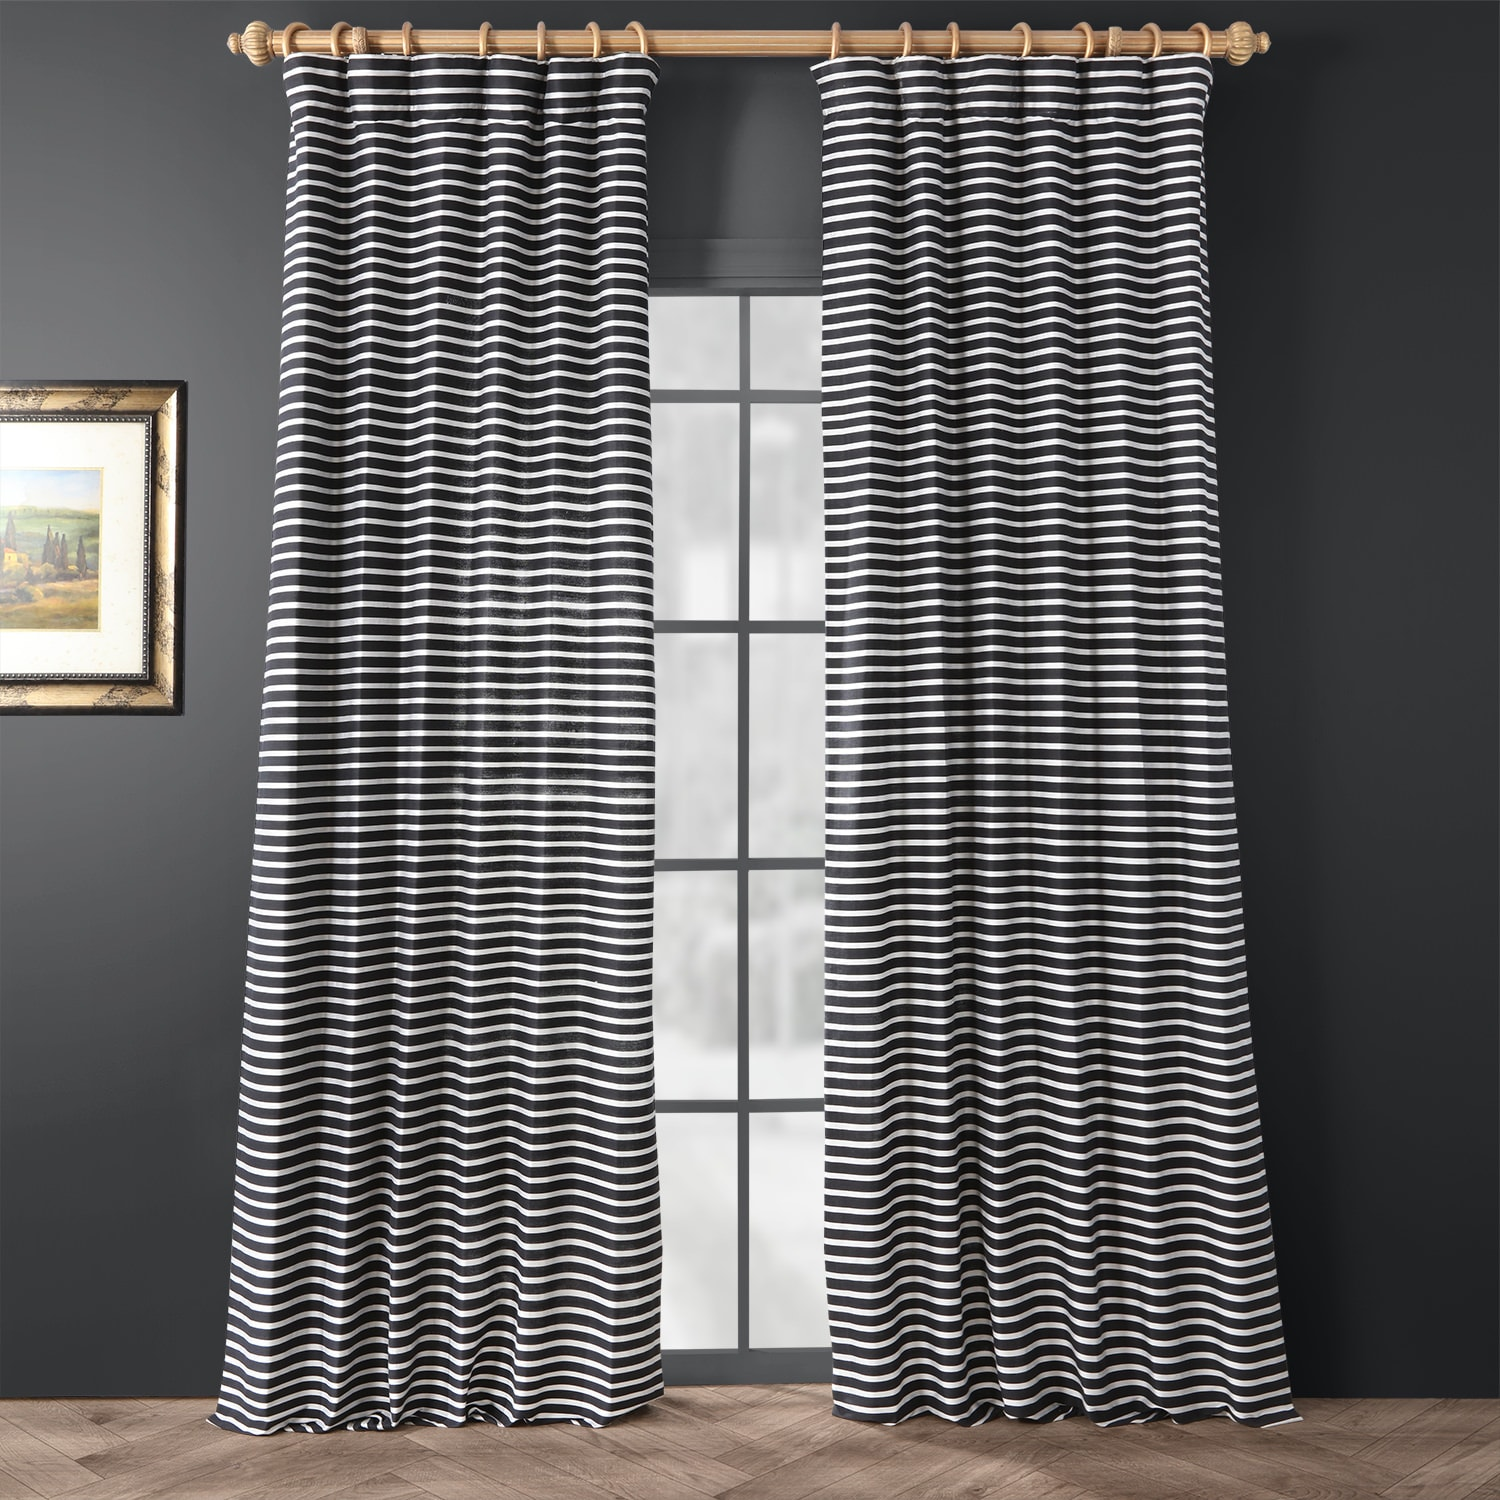 Chic Silver and Black Hand Weaved Cotton Curtain